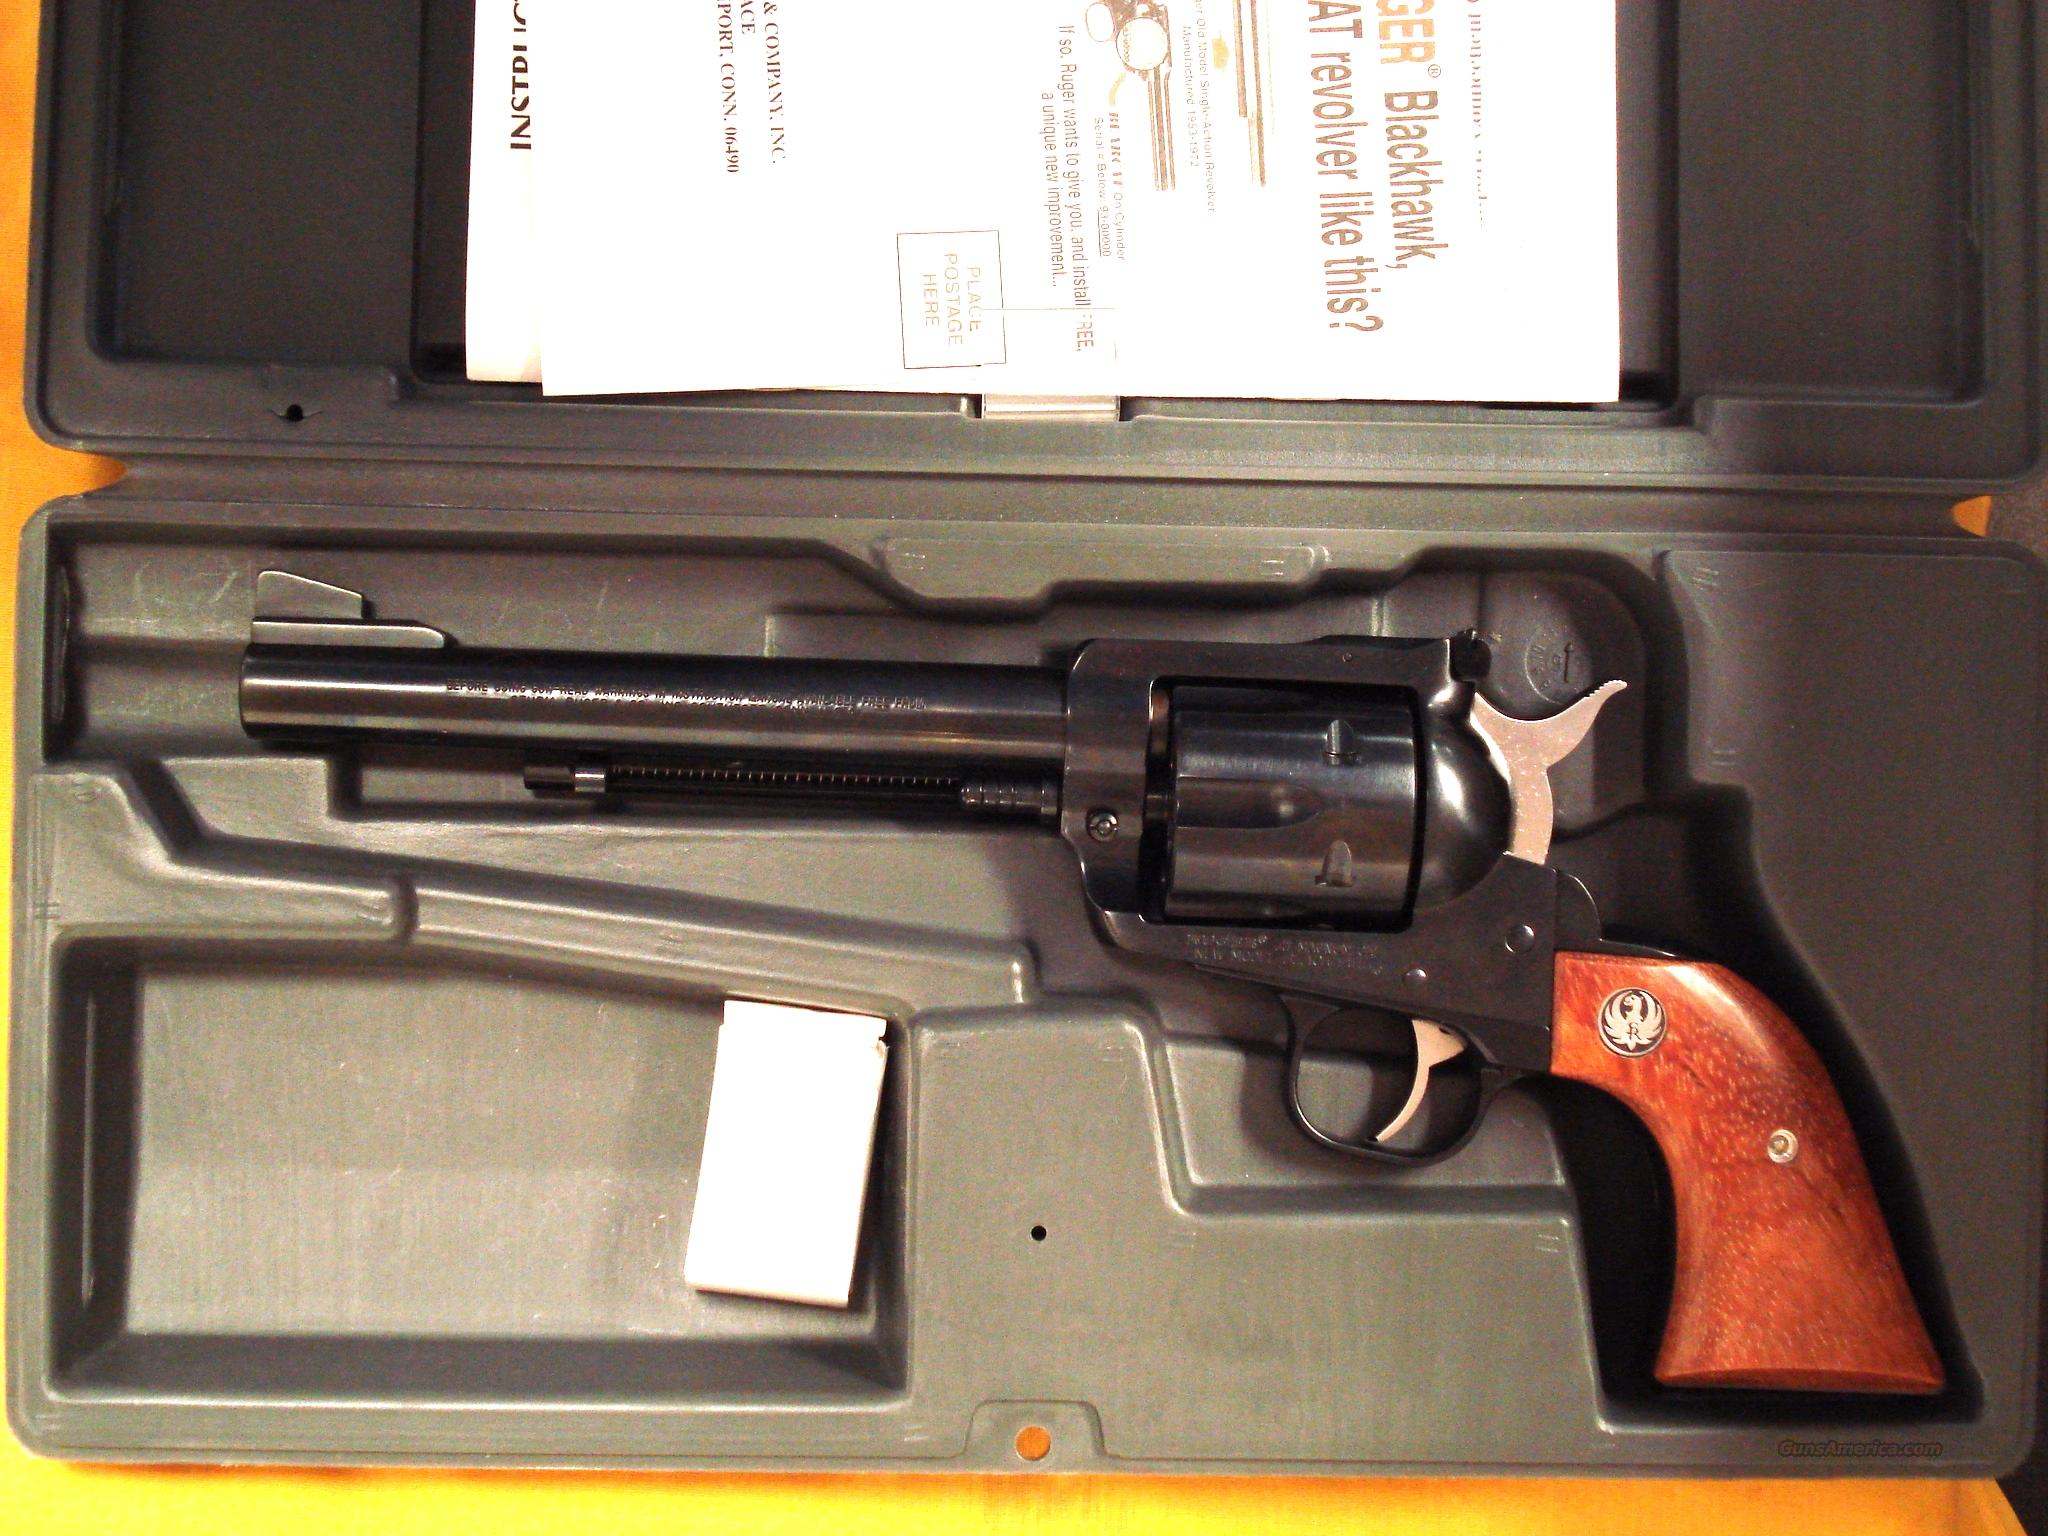 "RUGER NM BLACKHAWK .41 MAG 6 1/2""BBL  Guns > Pistols > Ruger Single Action Revolvers > Blackhawk Type"